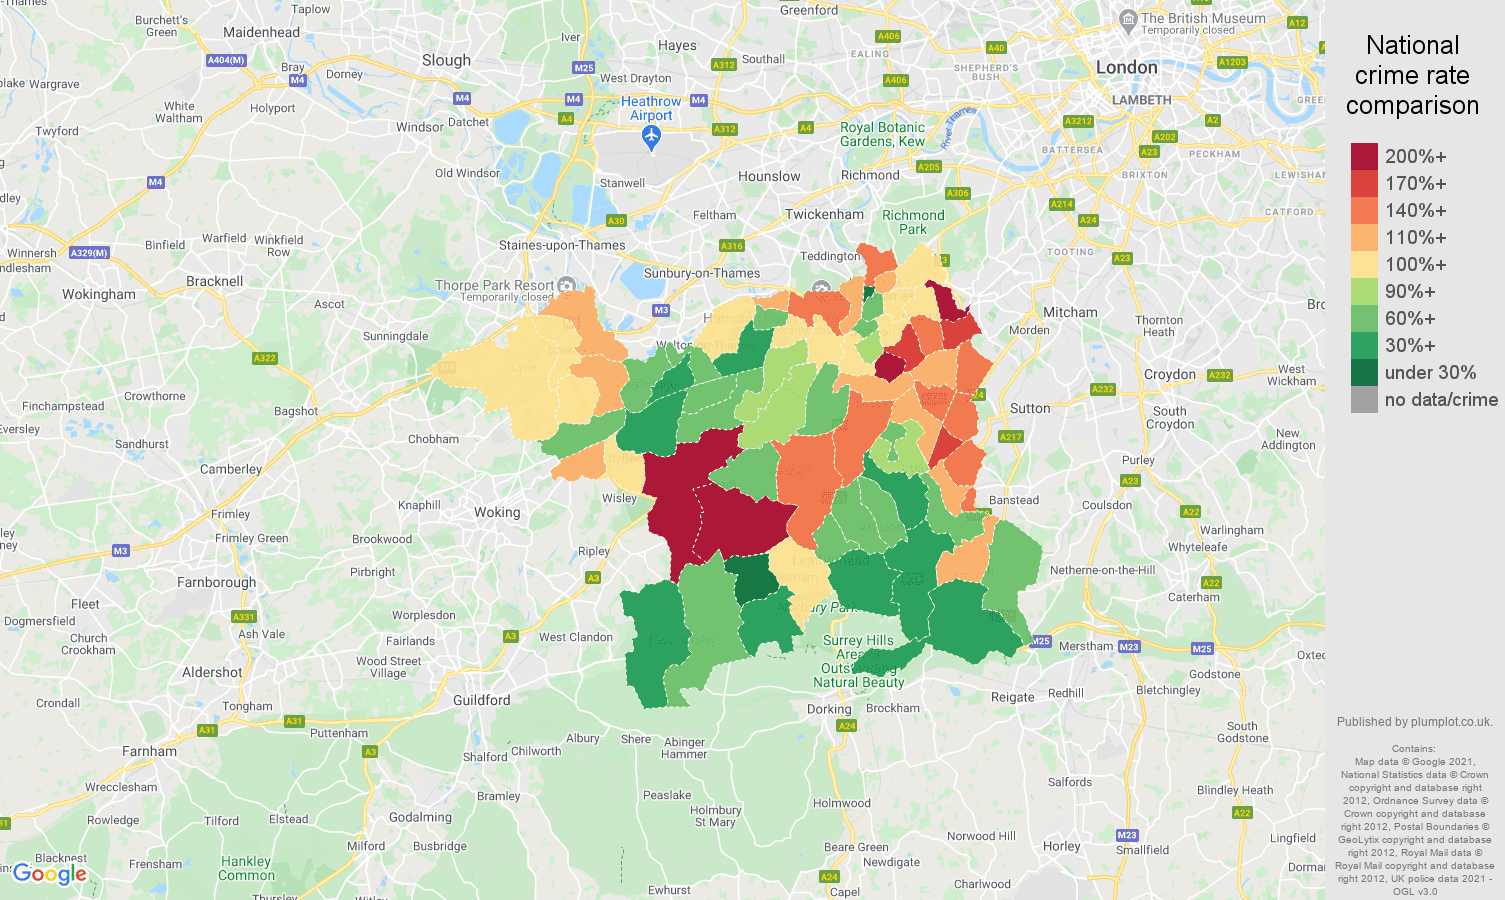 Kingston upon Thames vehicle crime rate comparison map